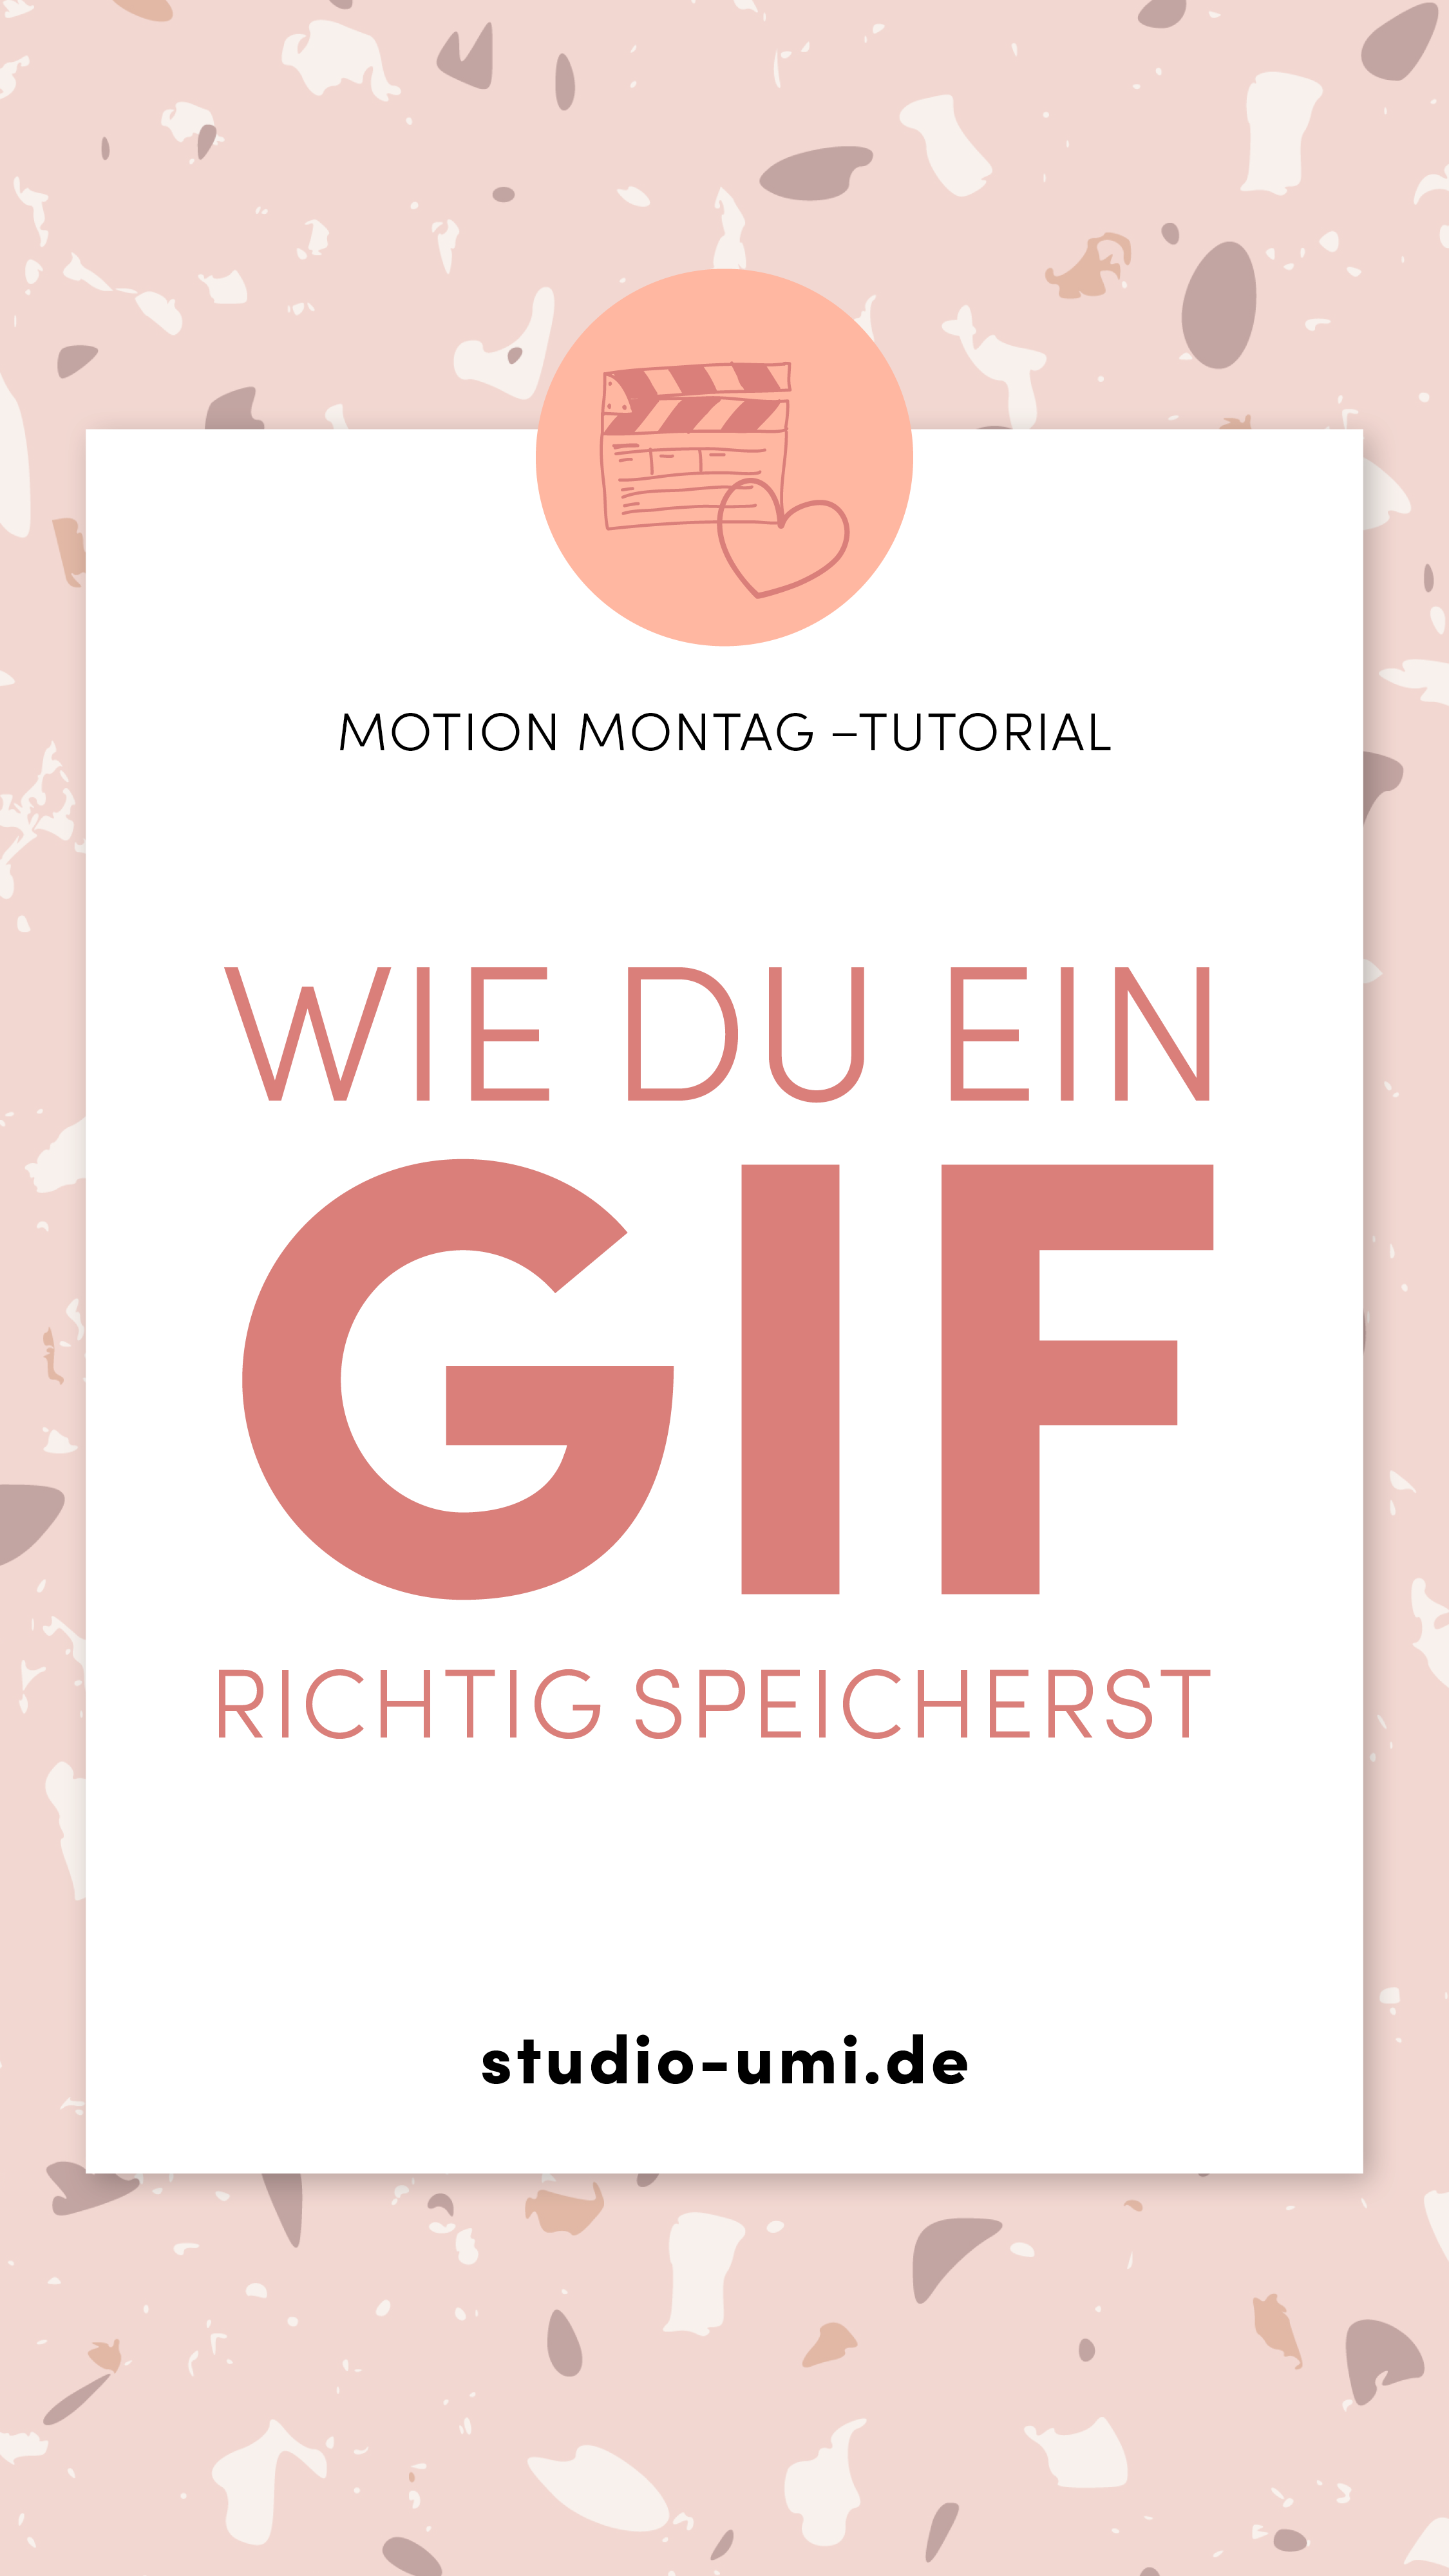 MotionMontag-Tutorial1.png